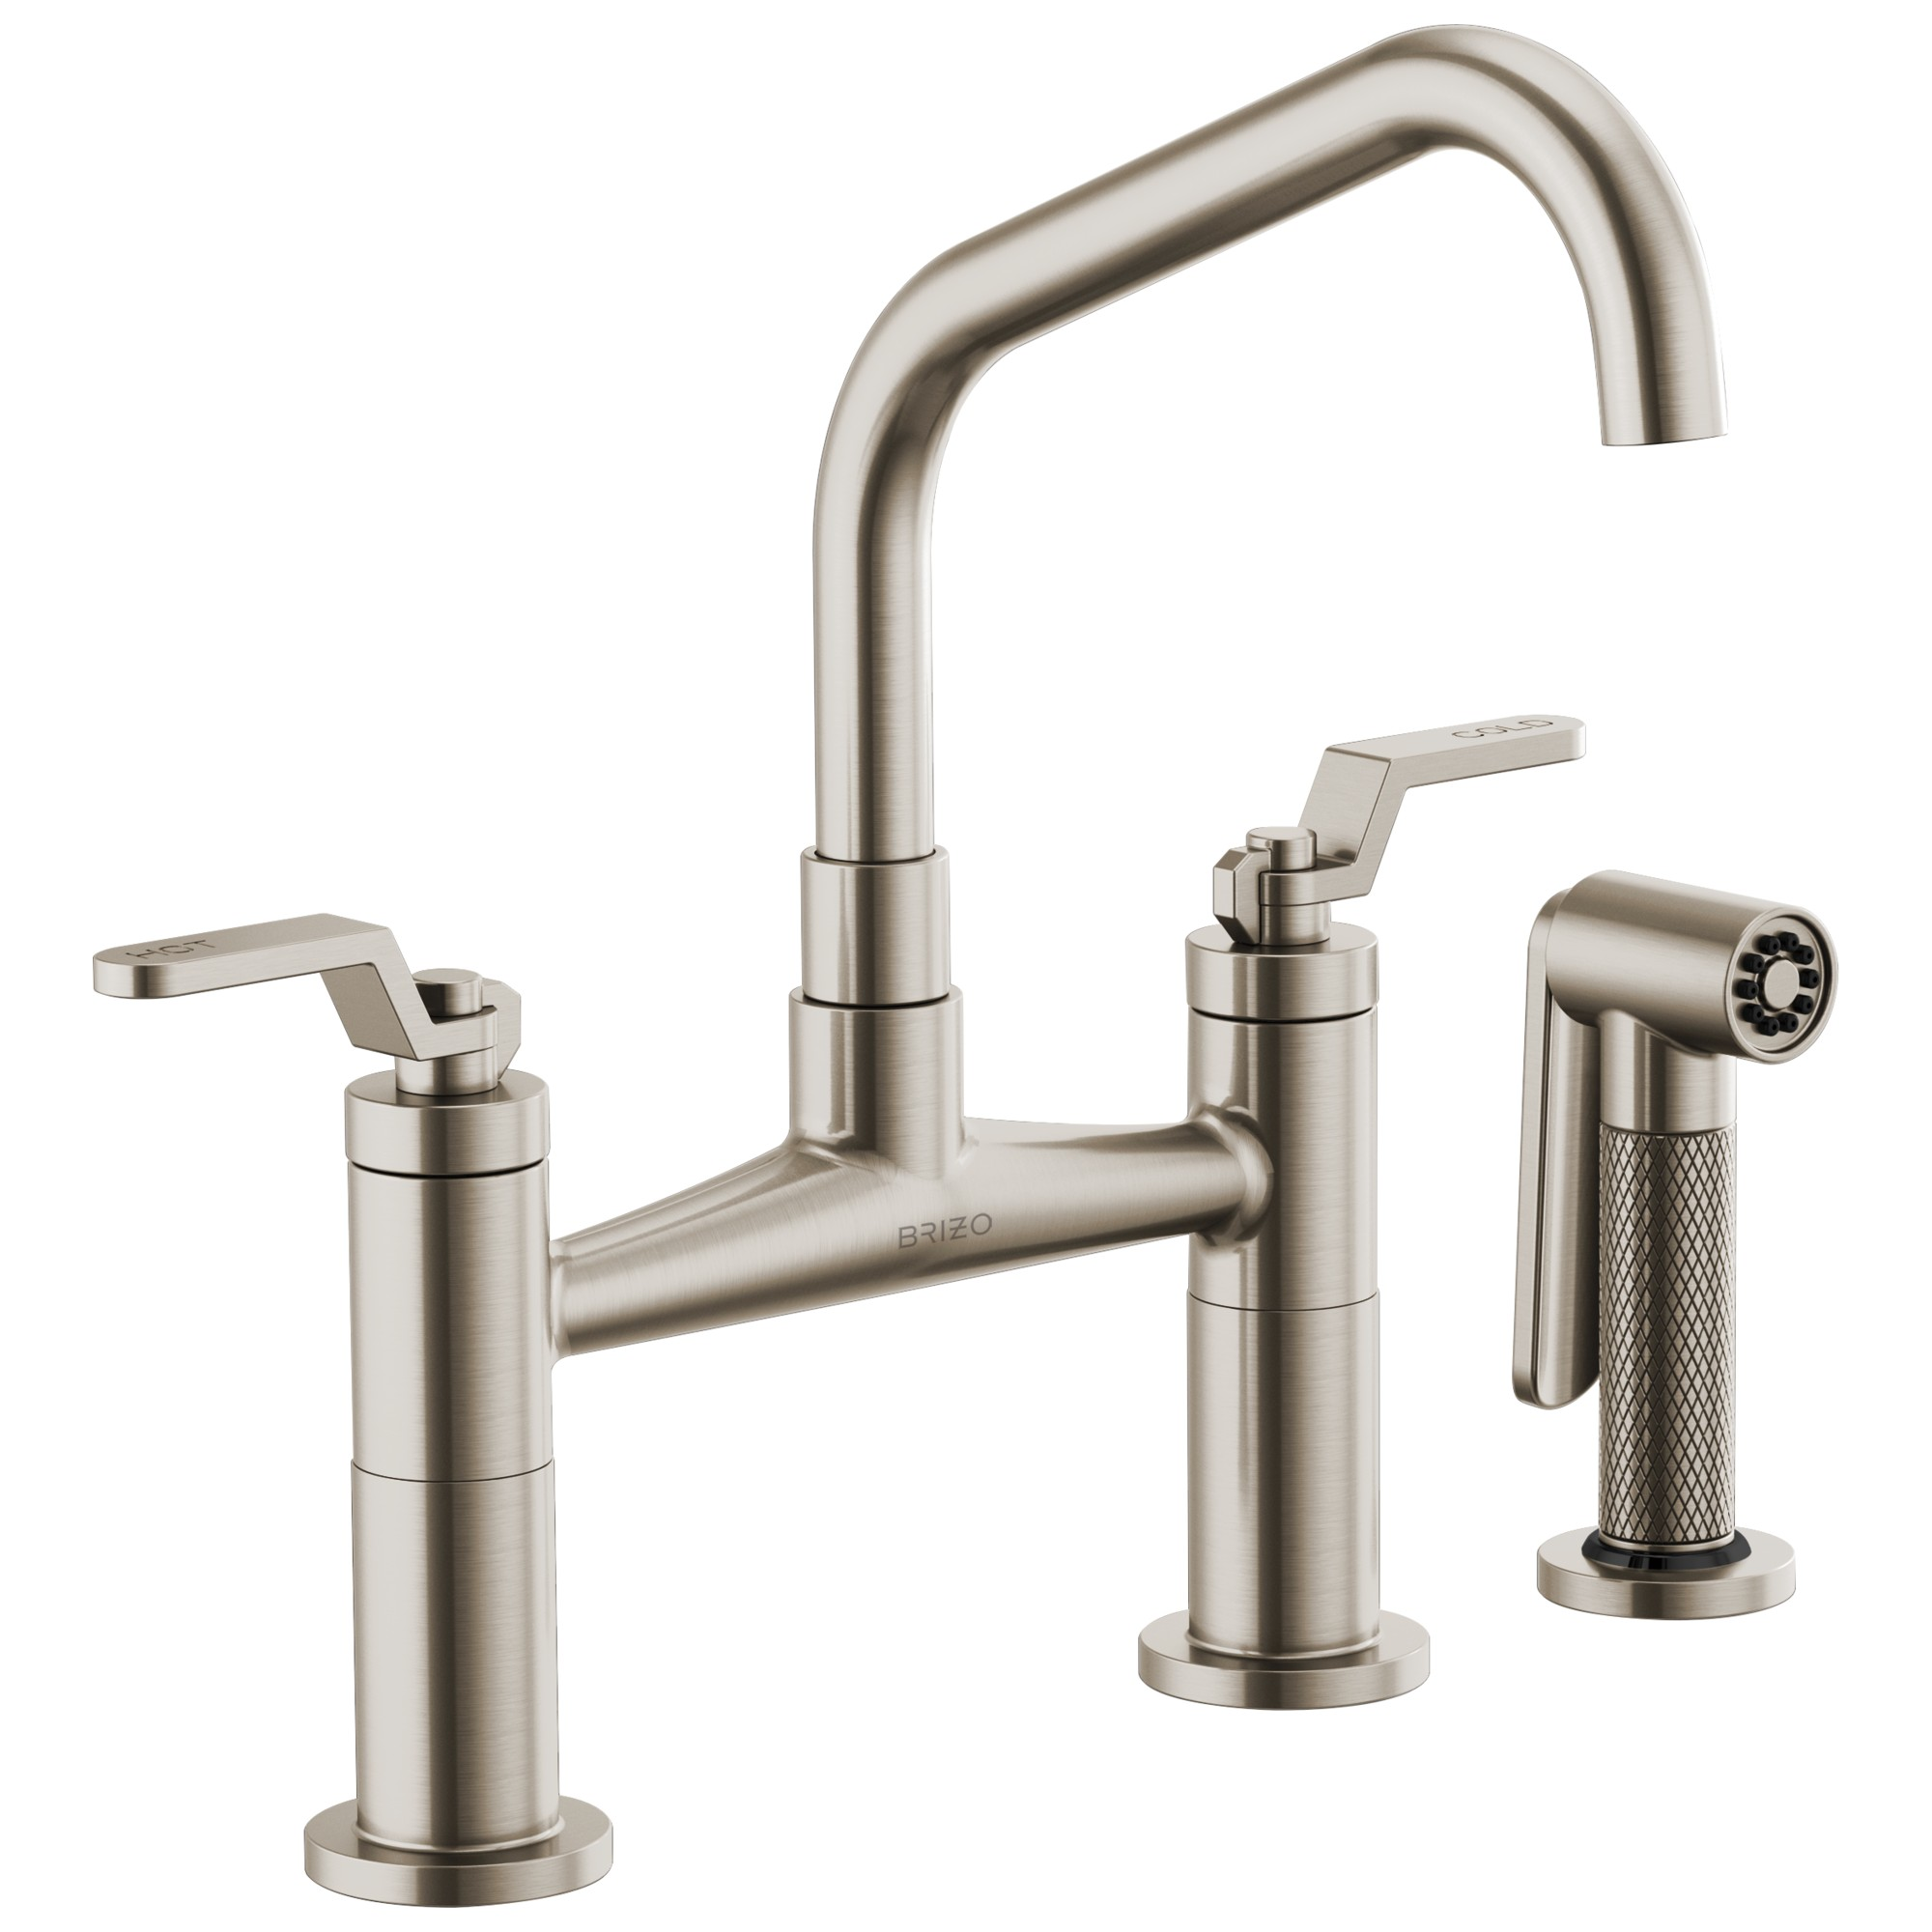 Brizo 62564LF-SS Litze Bridge Faucet with Angled Spout and Industrial Handle - Stainless